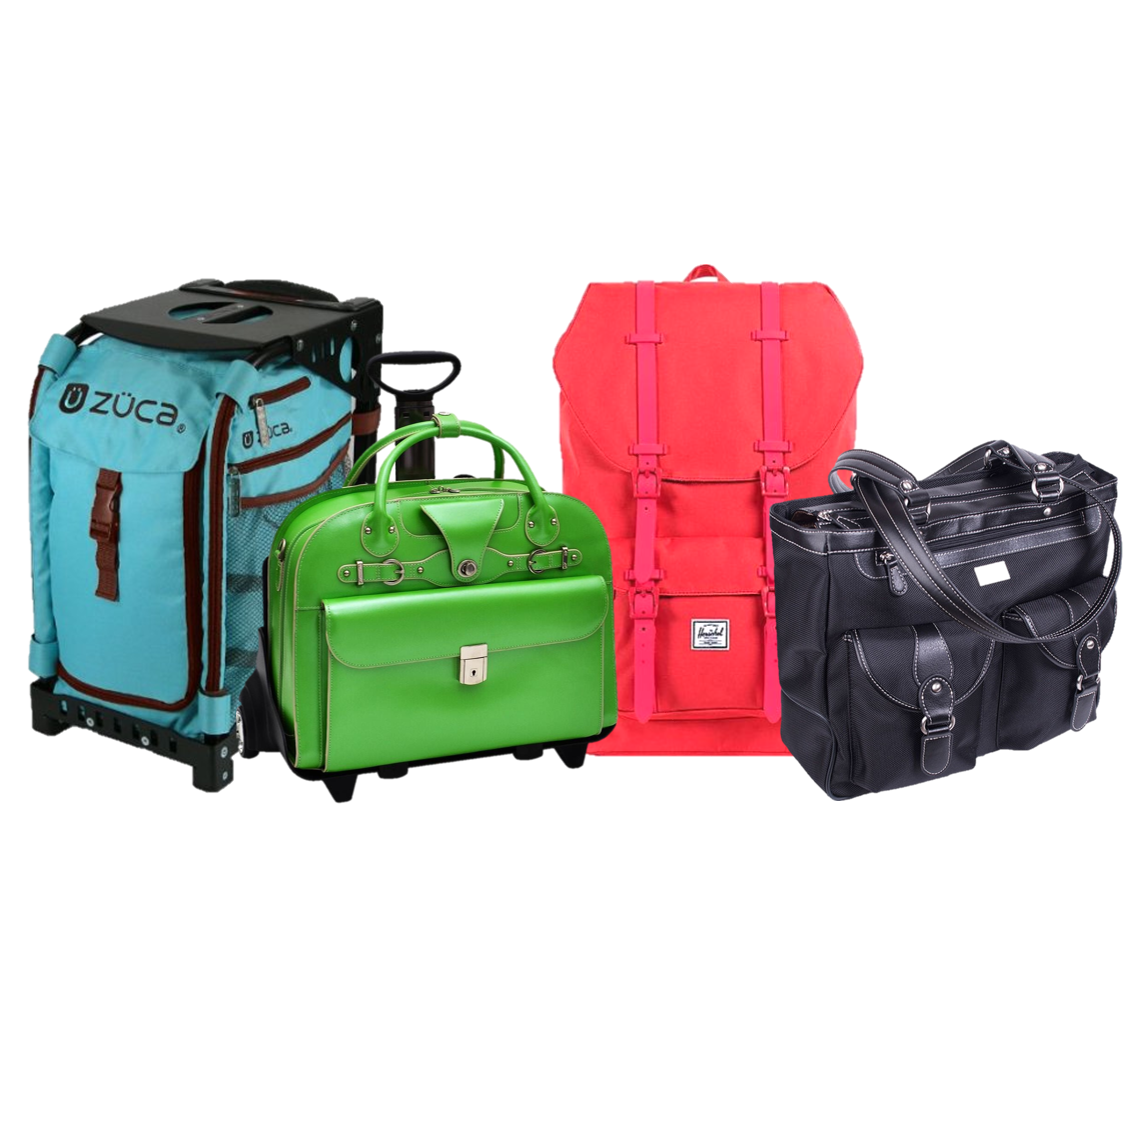 Nursing Bags On Wheels >> Wheeled Bags Briefcases Backpacks And Clinical Bags For